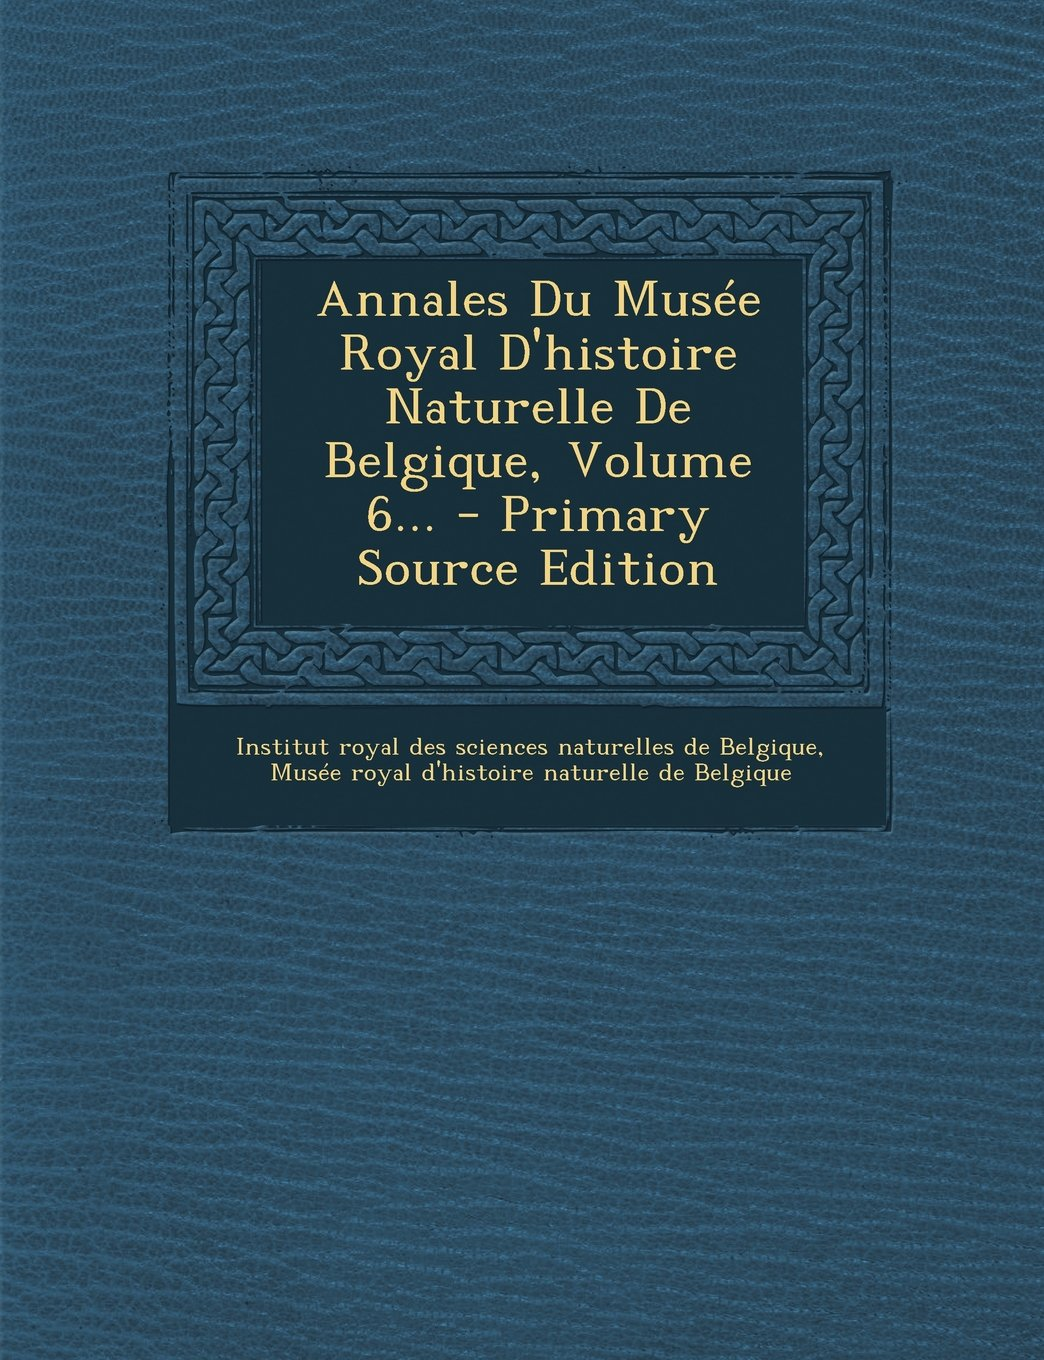 Download Annales Du Musee Royal D'Histoire Naturelle de Belgique, Volume 6... - Primary Source Edition (French Edition) pdf